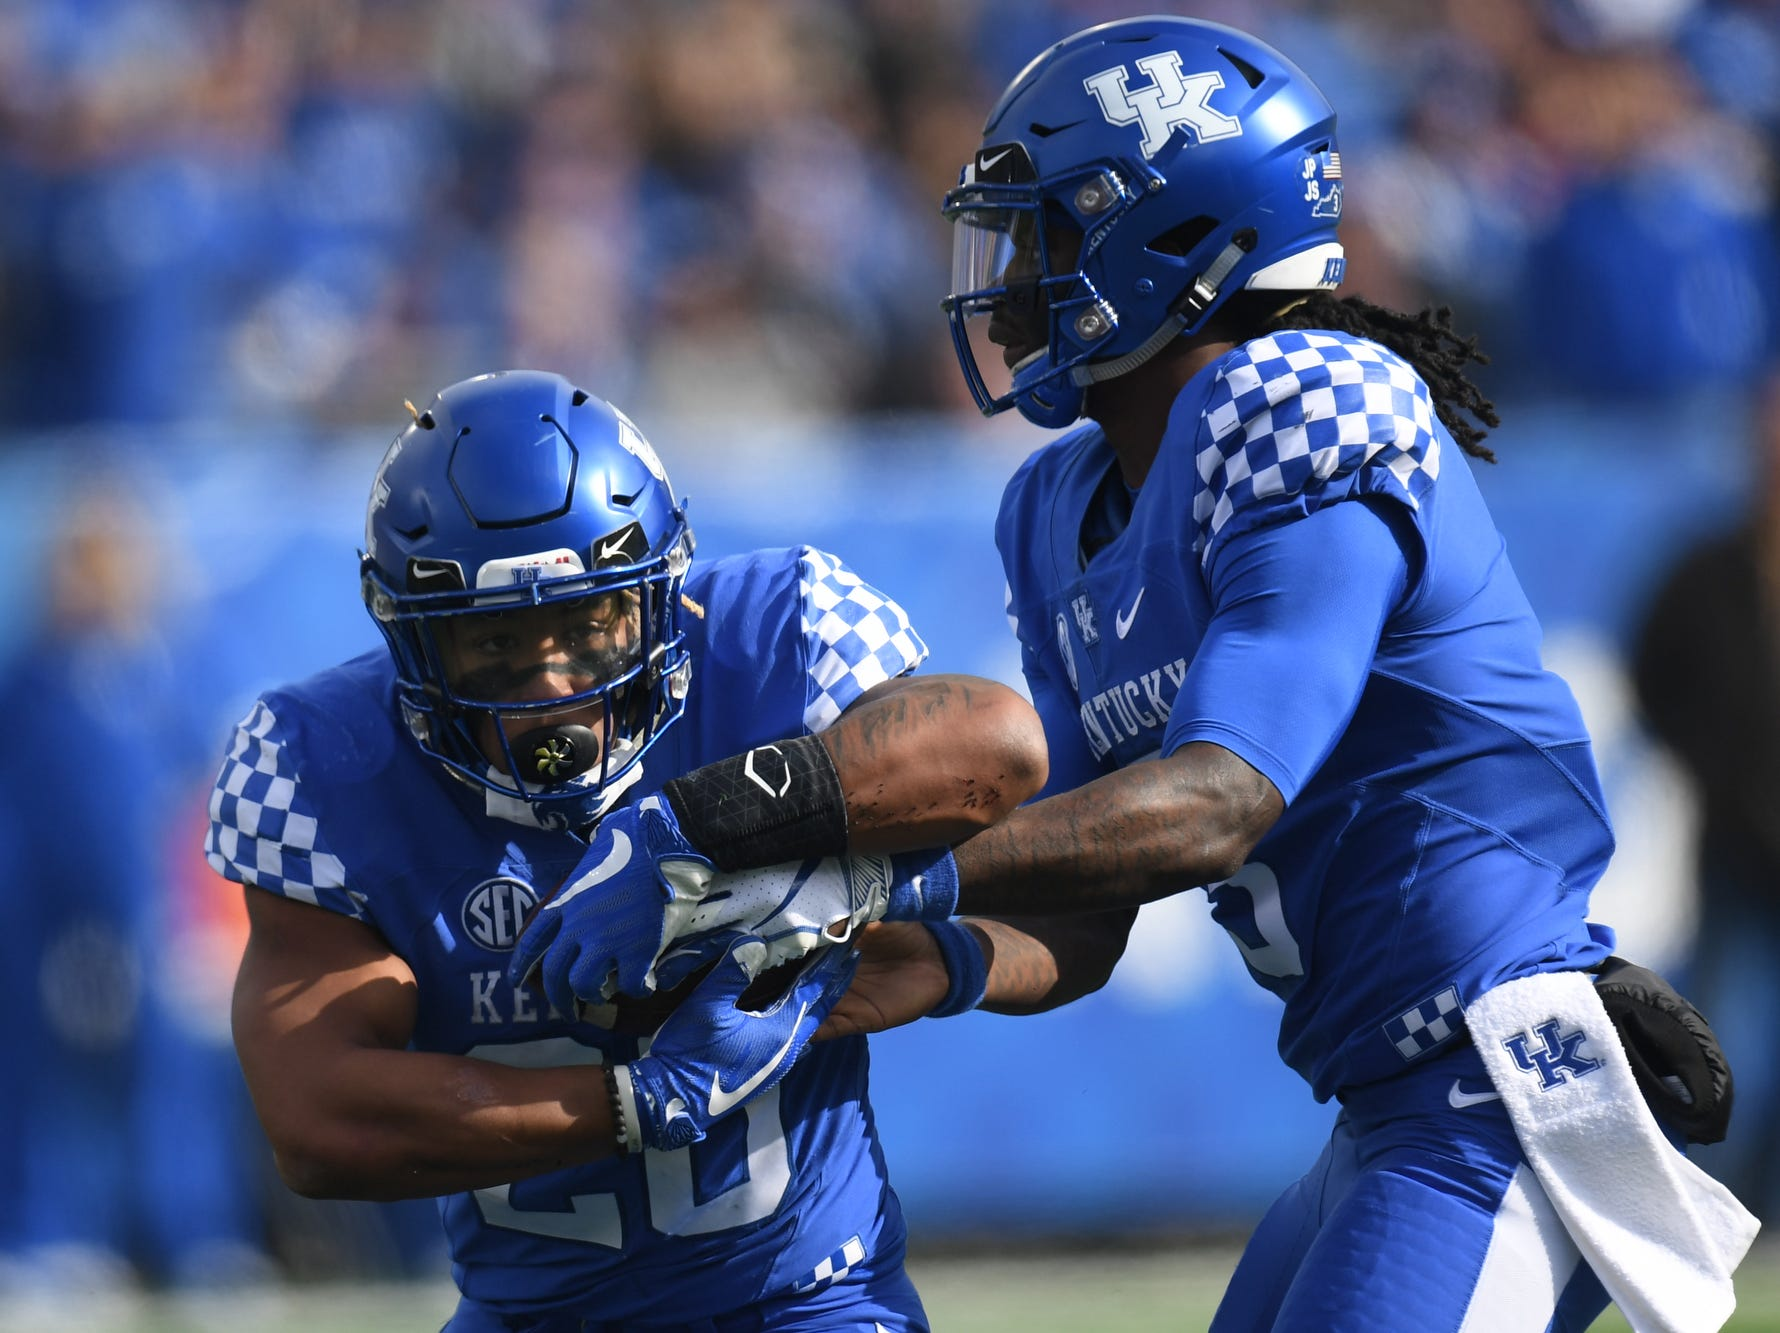 UK RB Benny Snell Jr. receives a handoff from QB Terry Wilson during the University of Kentucky football game against Middle Tennessee at Kroger Field in Lexington, Kentucky on Saturday, November 17, 2018.